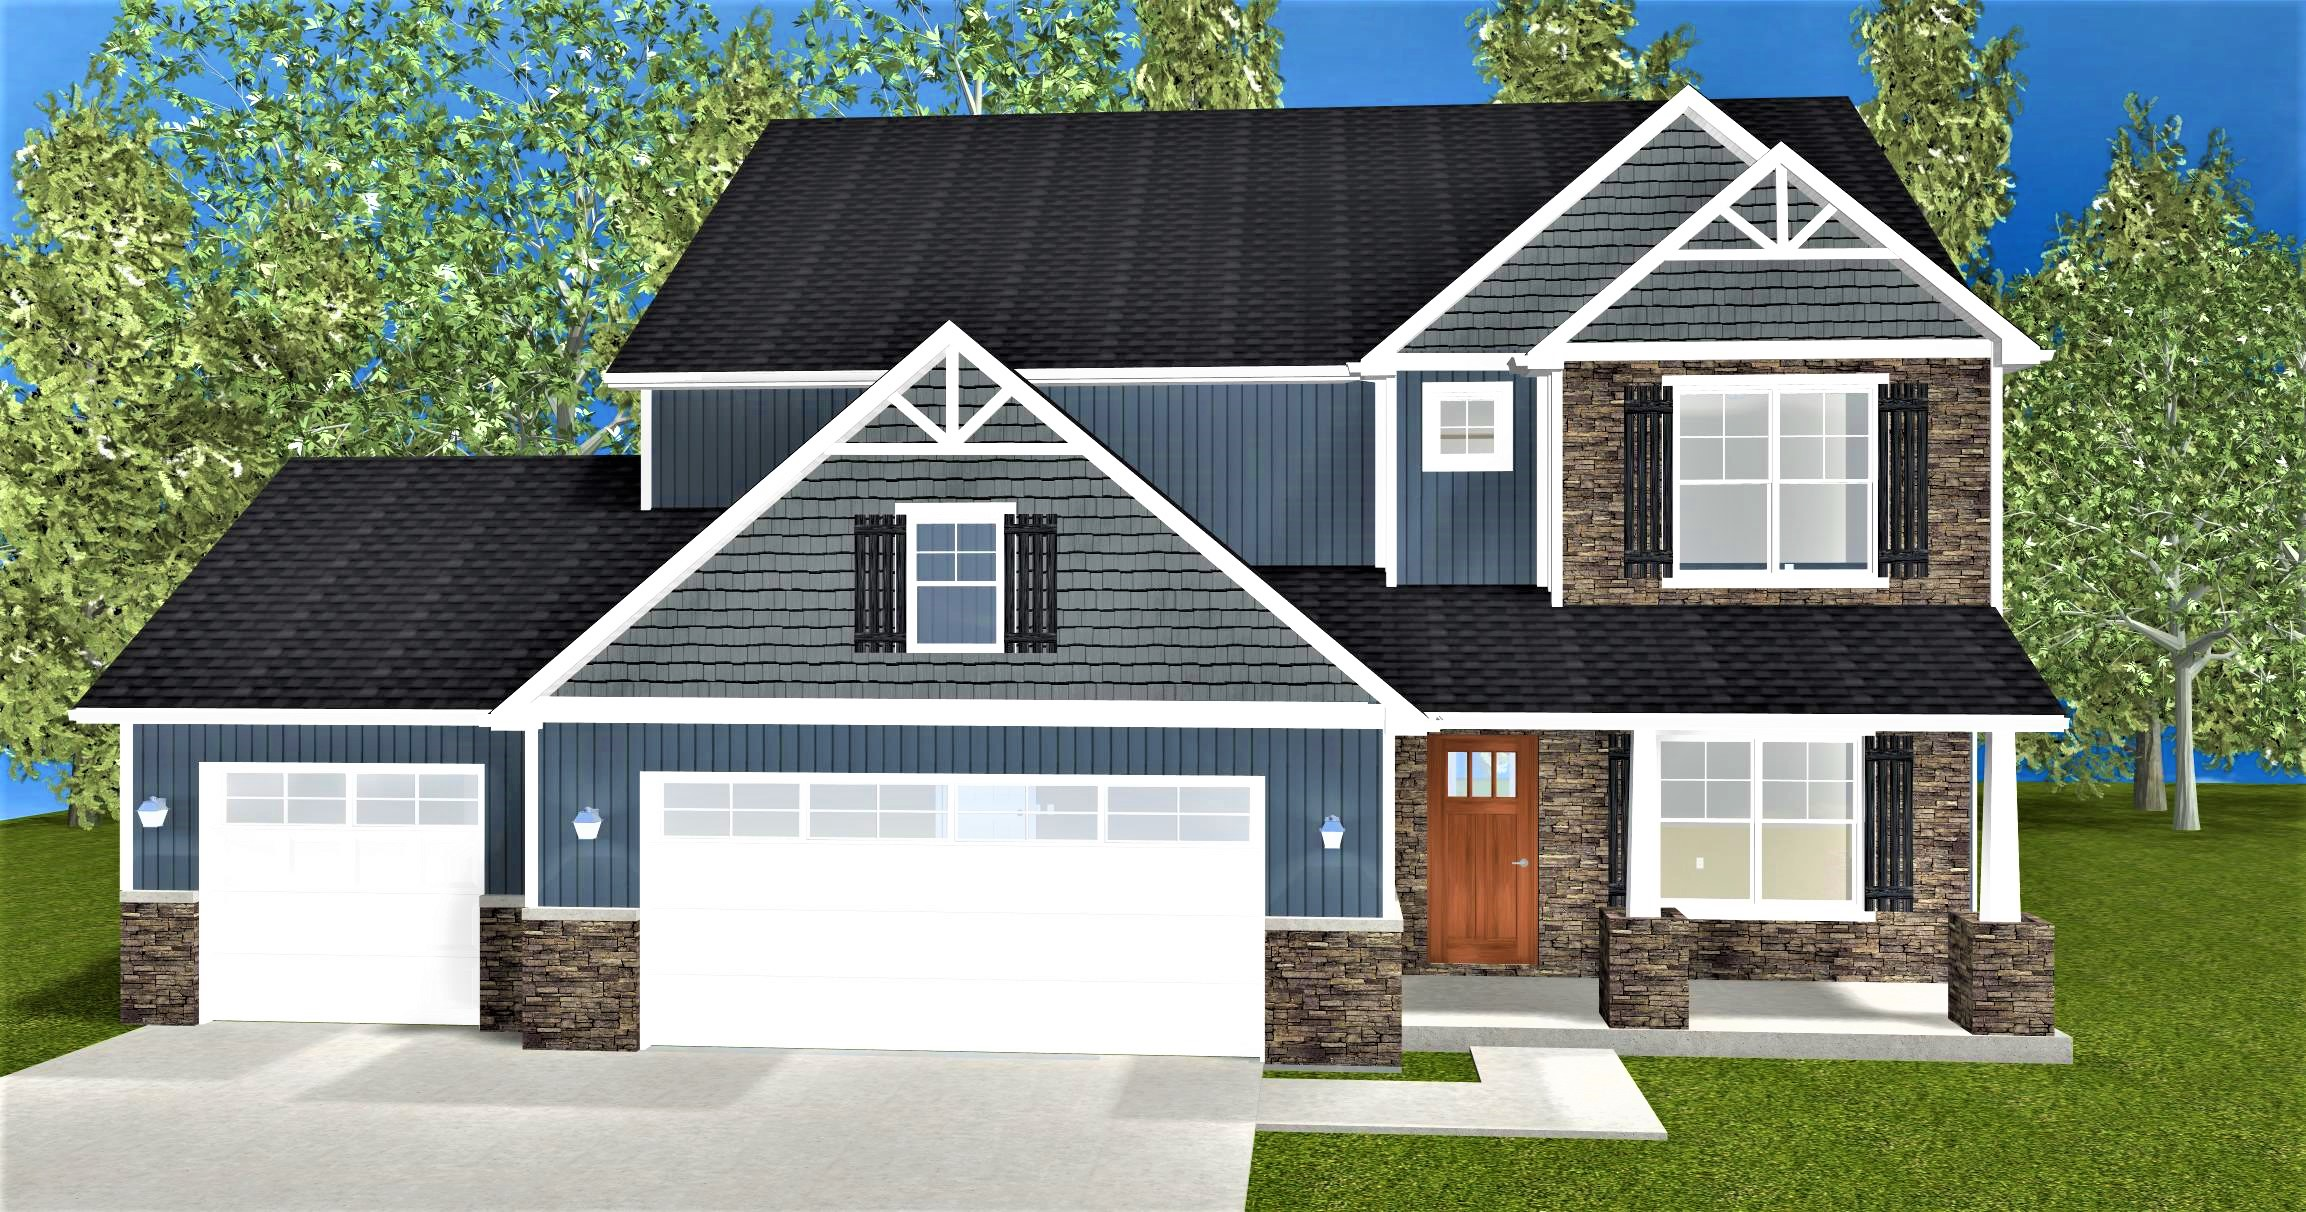 The Emma Grace – Starting at $318,900 with Standard Lot